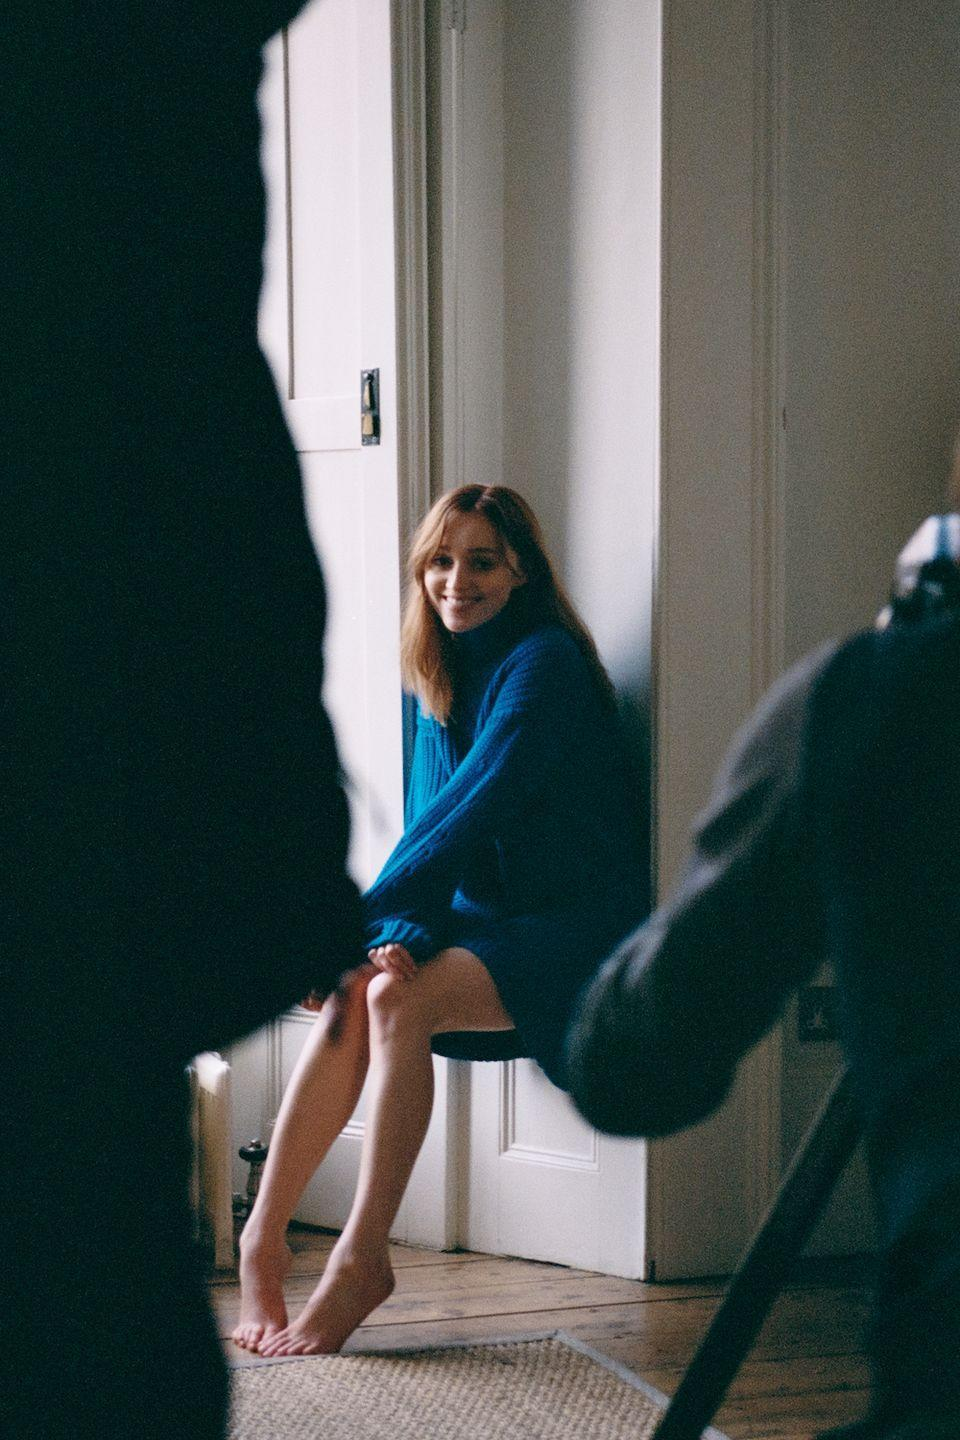 <p>The 25-year-old can be seen posing in a London townhouse for 'day in the life of' the campaign.</p><p>'As I was designing this latest collection, I was thinking a lot about the British sensibility and that effortless approach to British style, which I am so often inspired by, 'Han Chong explained. 'I felt we needed to work with someone to bring this to life rather than present the collection in a traditional show format, and having captured the hearts and imaginations of so many people over the last few months, I knew Phoebe would be the perfect woman.'</p>